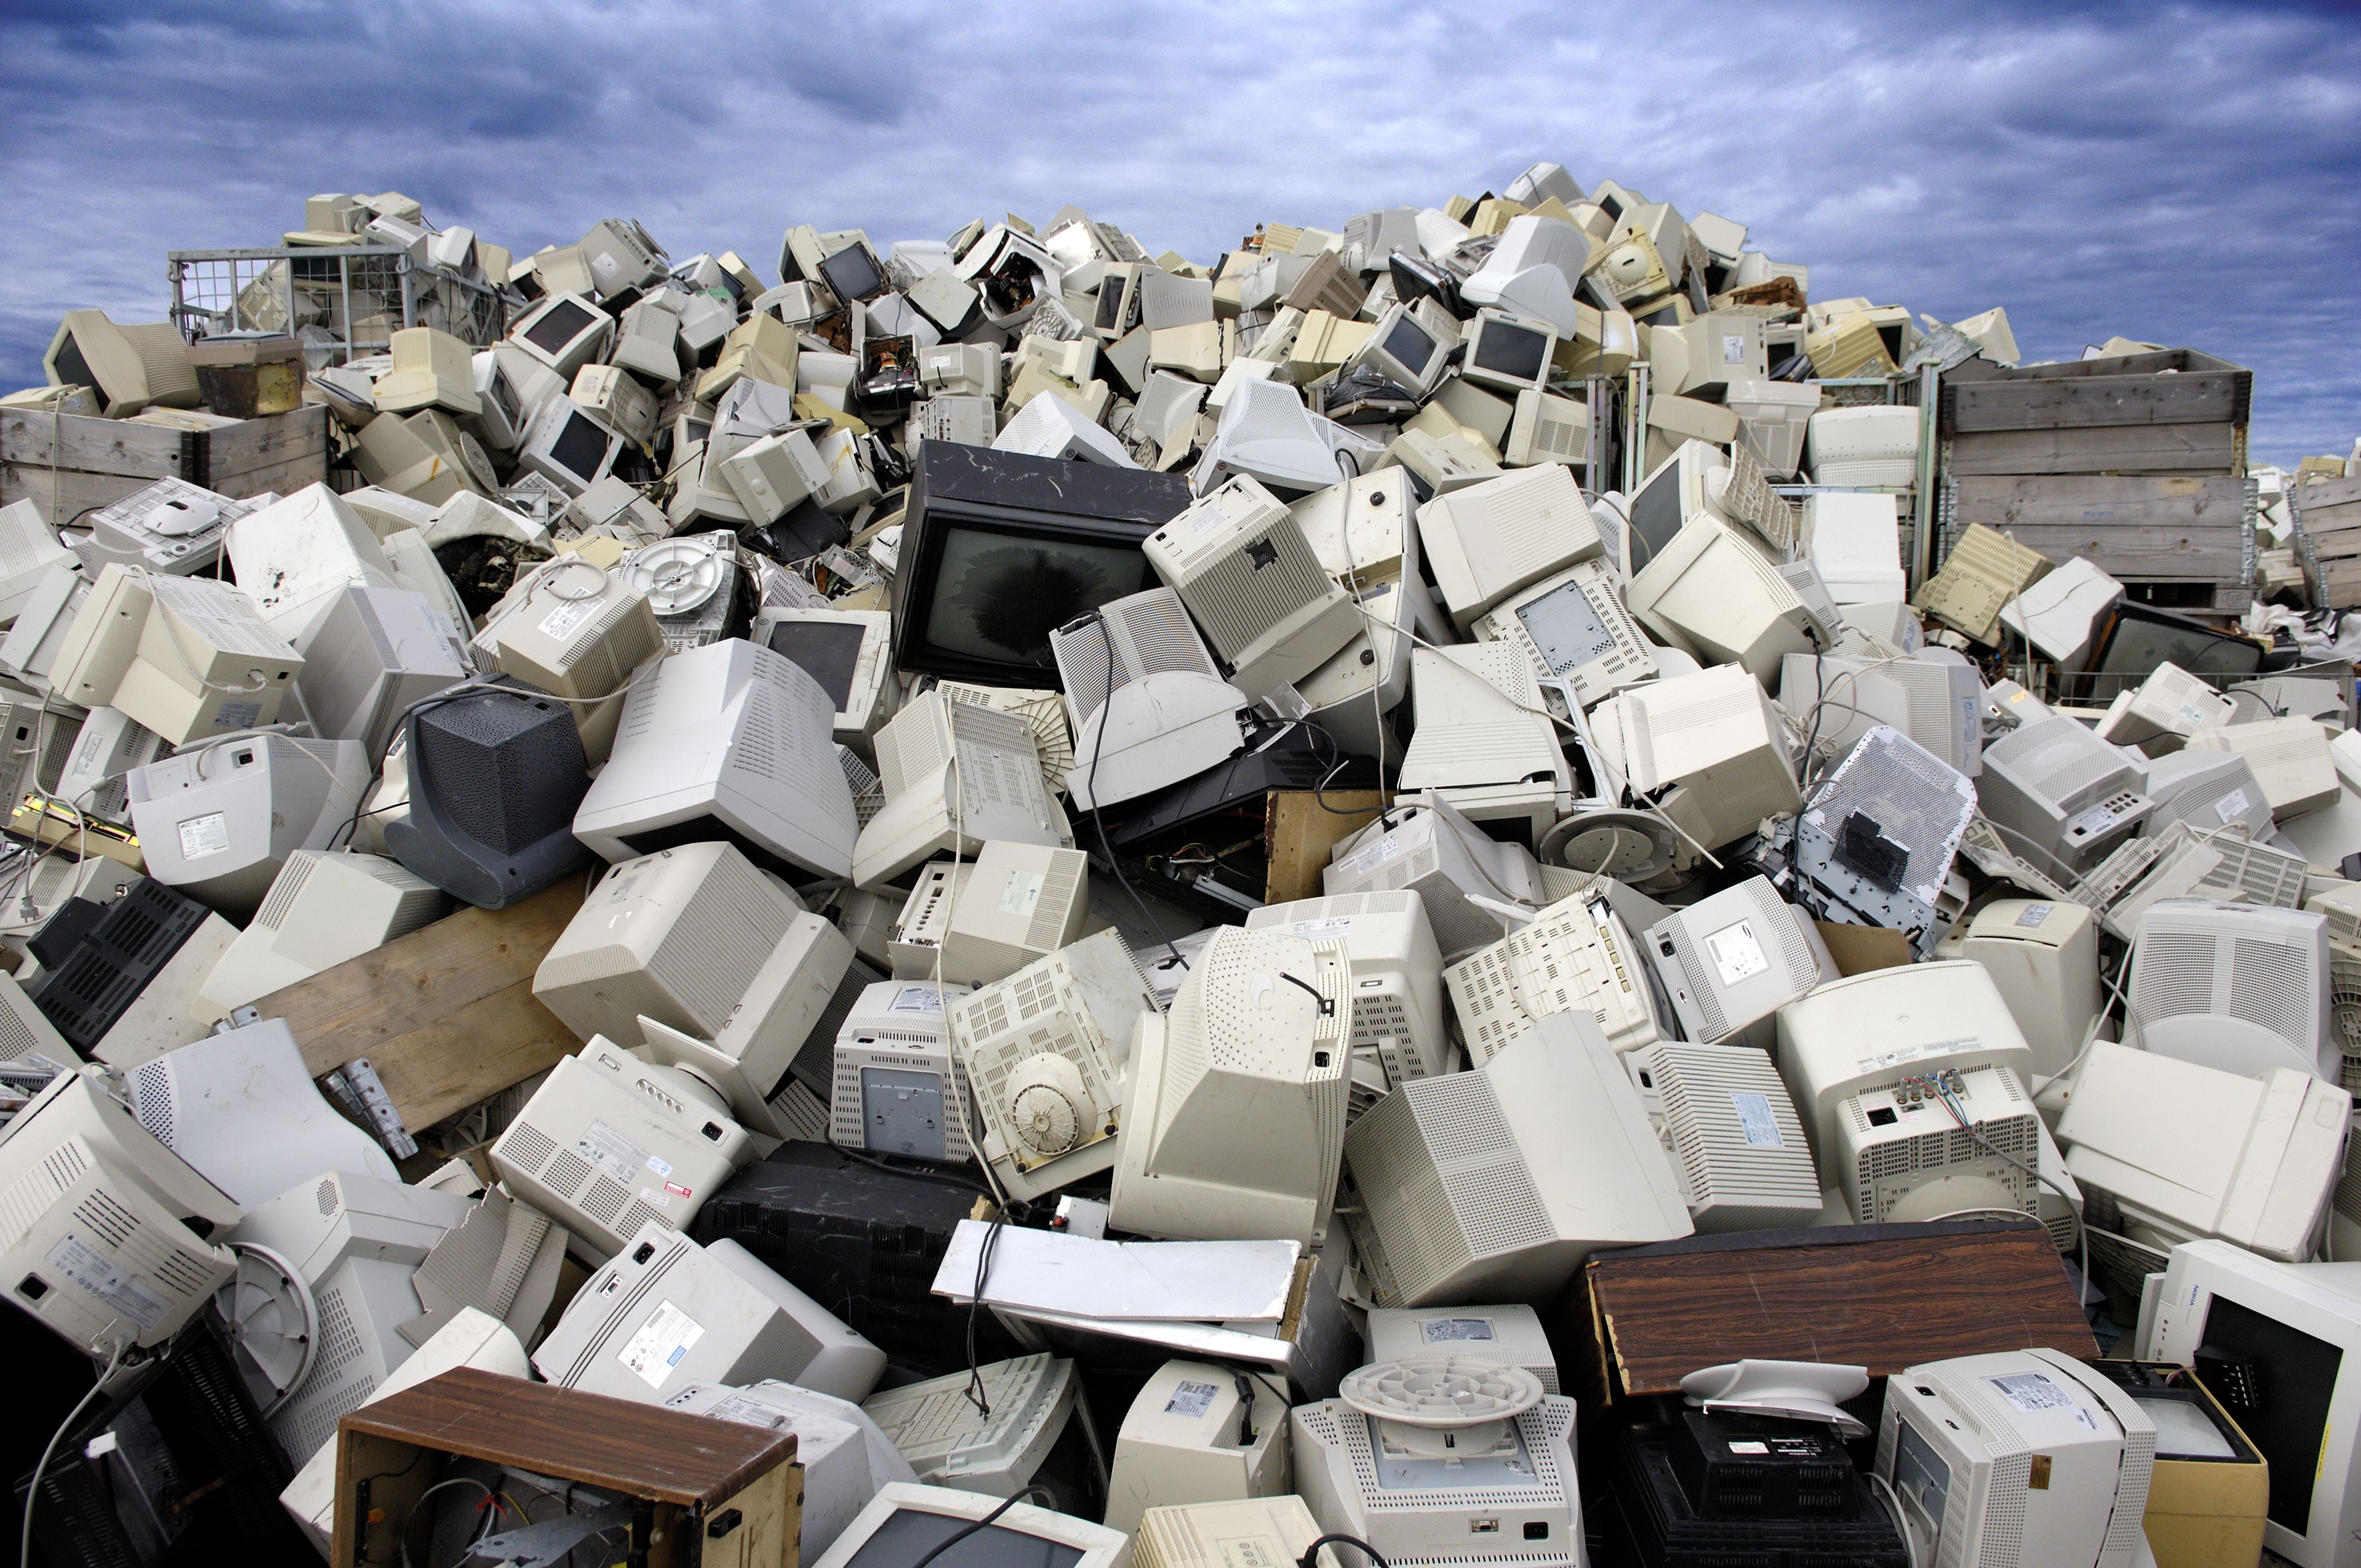 How to Recycle Your Analog or Digital TV and More